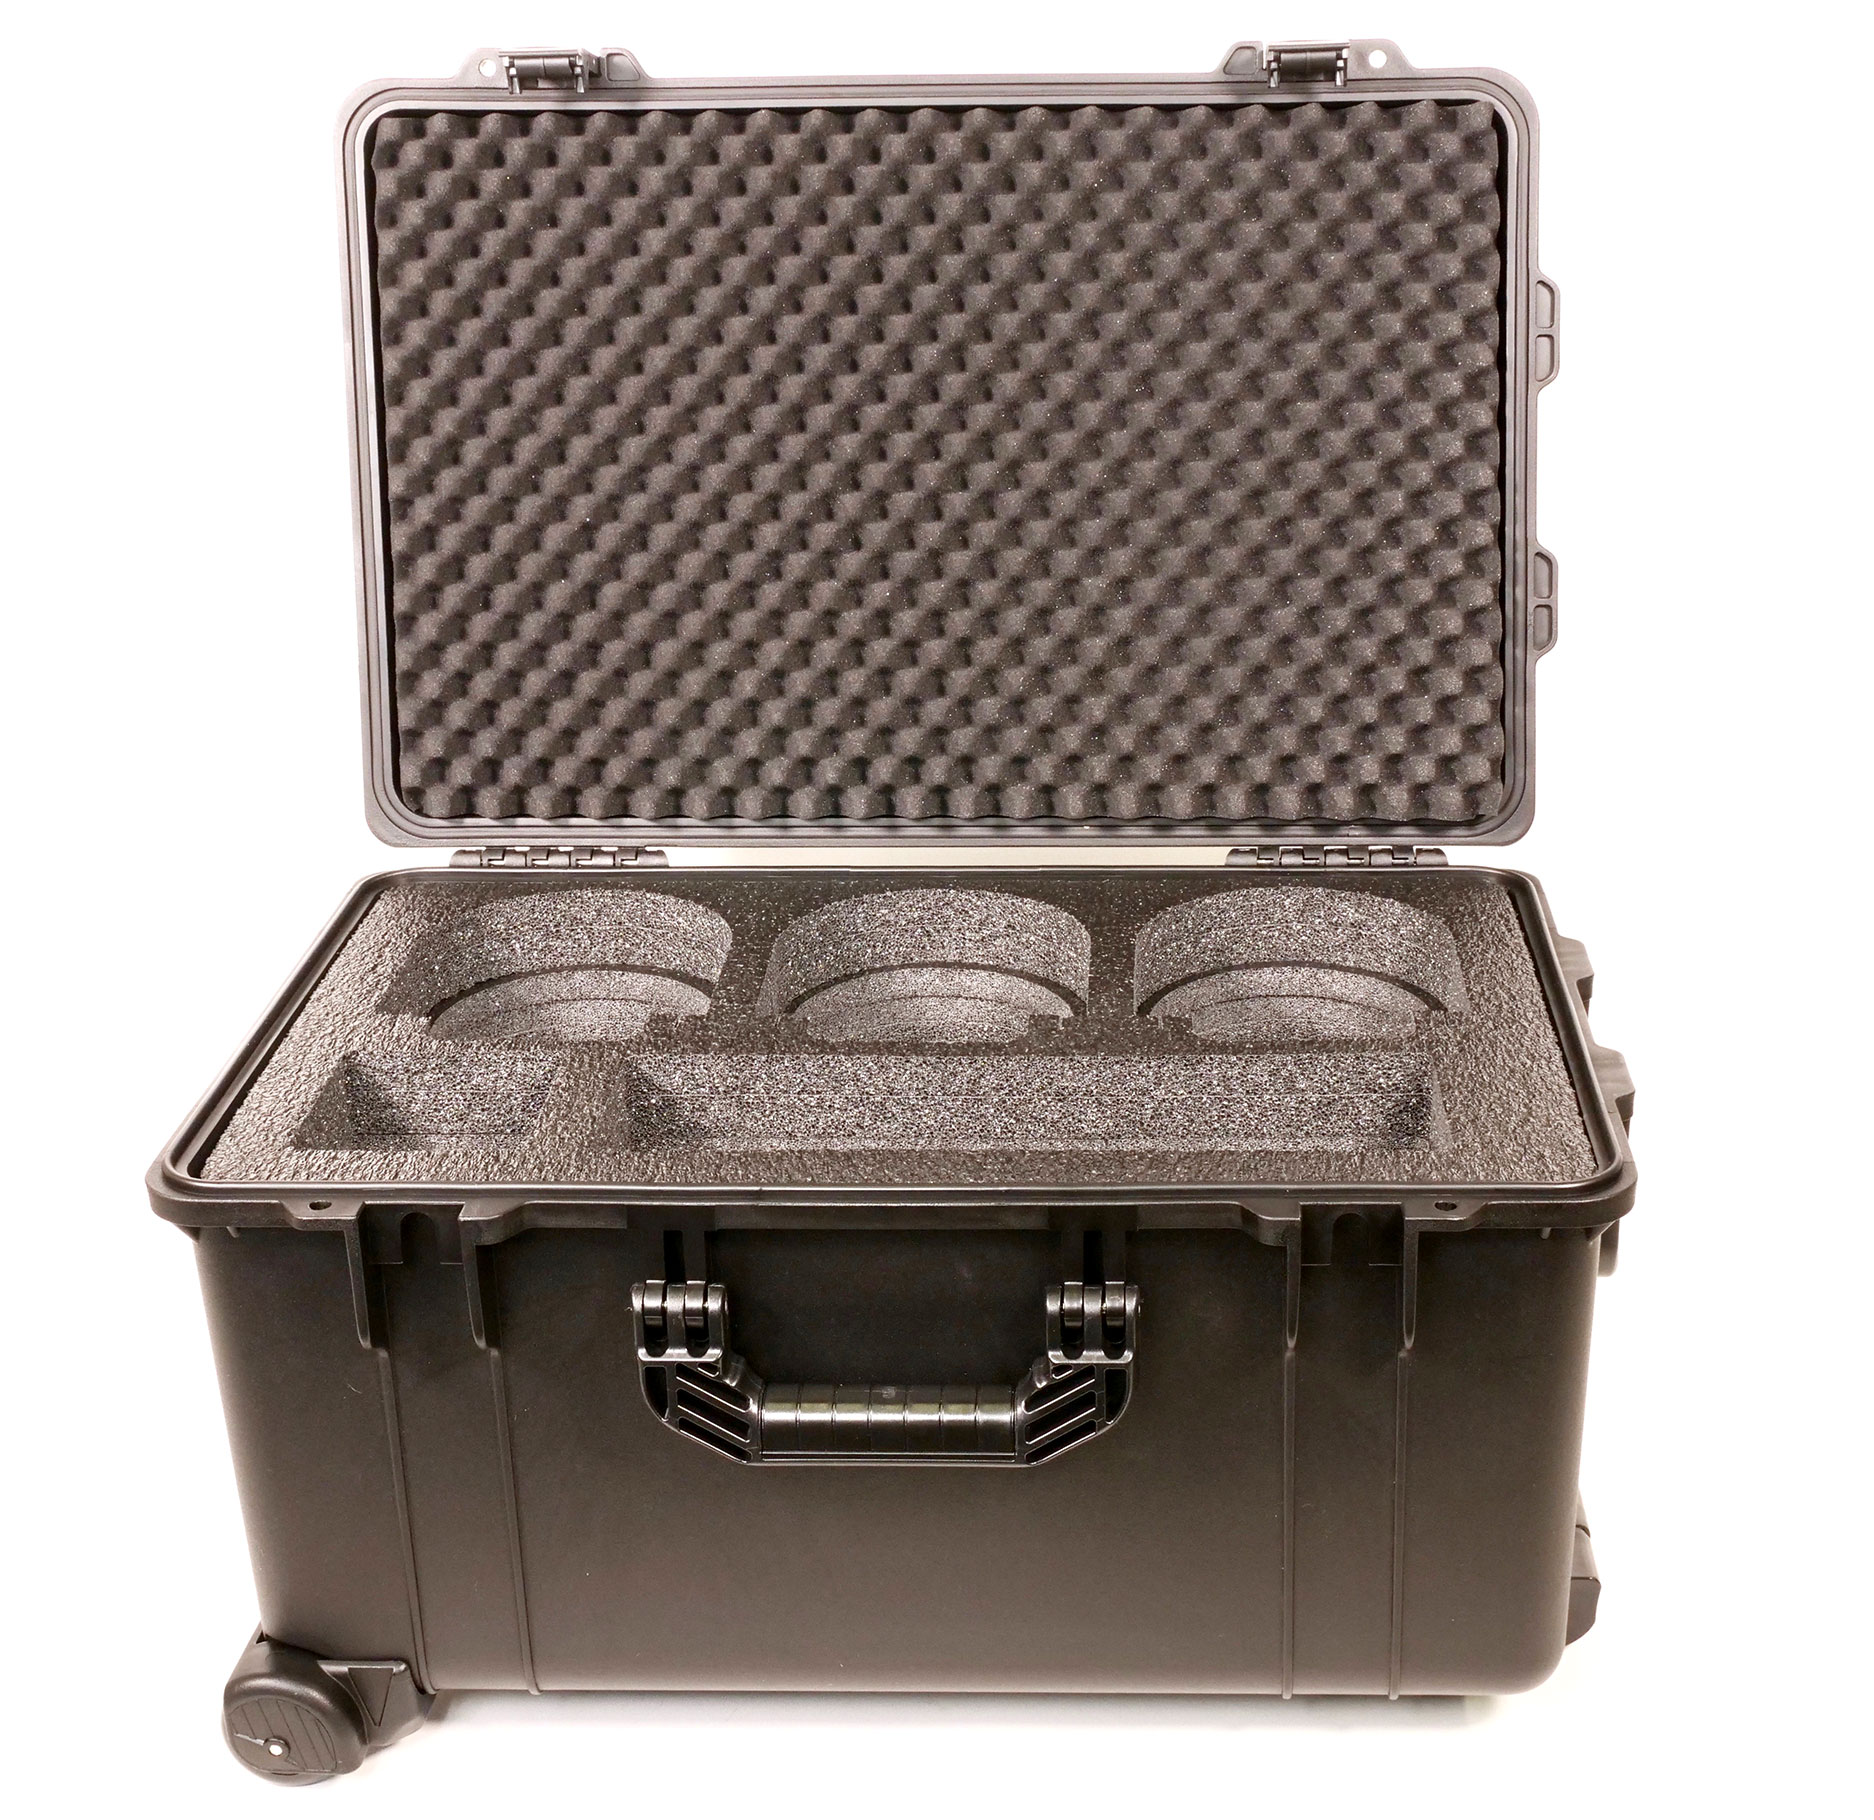 HC-800F Case Included